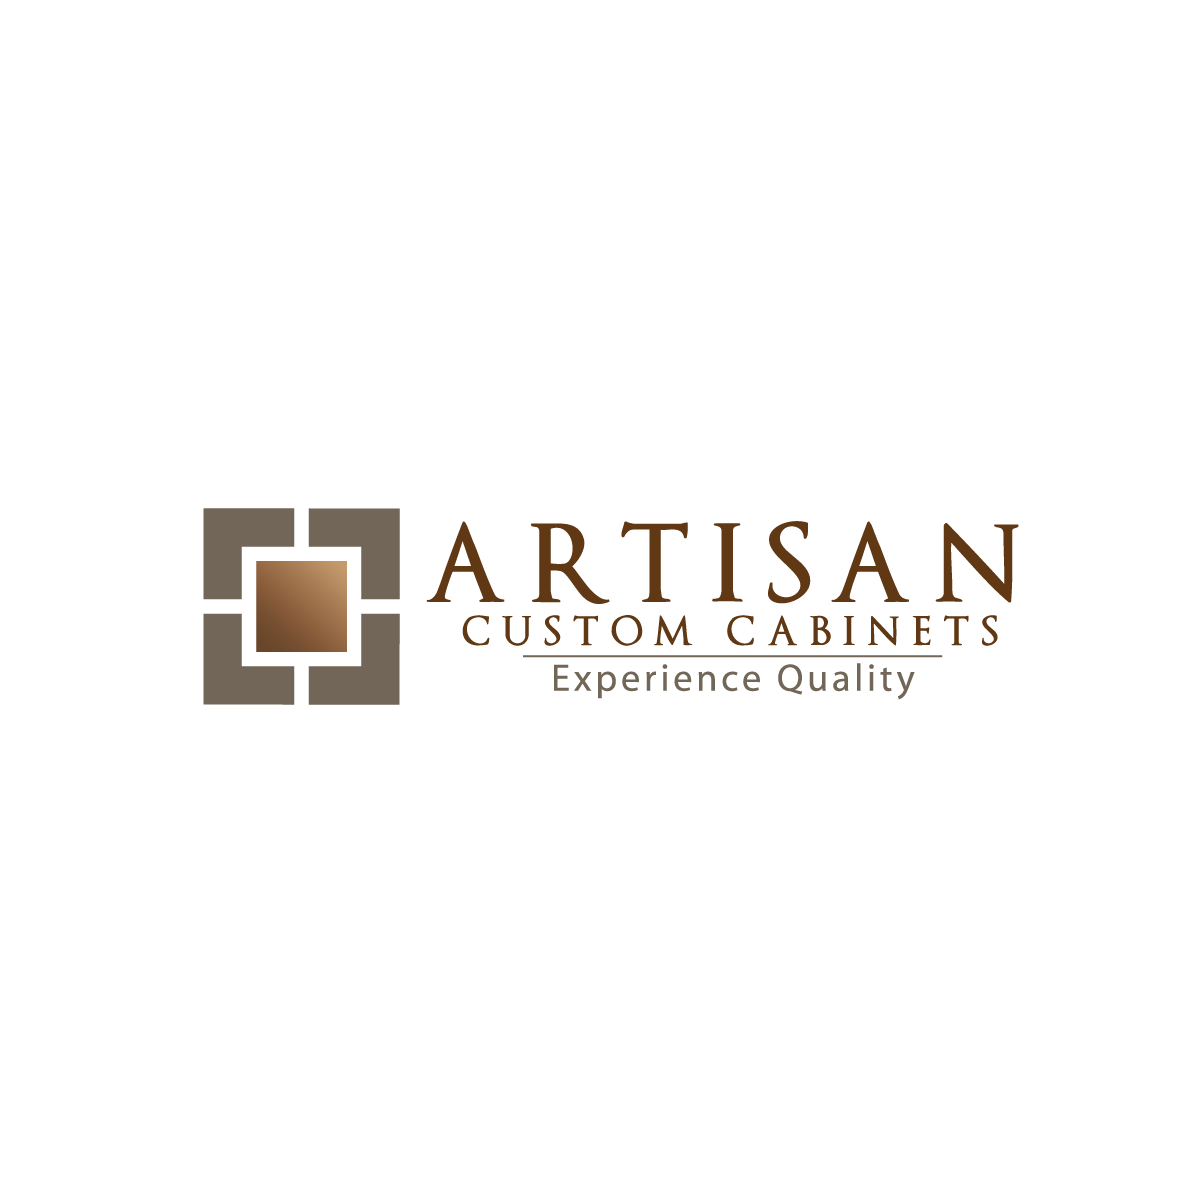 Logo Design by rockin - Entry No. 75 in the Logo Design Contest Creative Logo Design for Artisan Custom Cabinets.